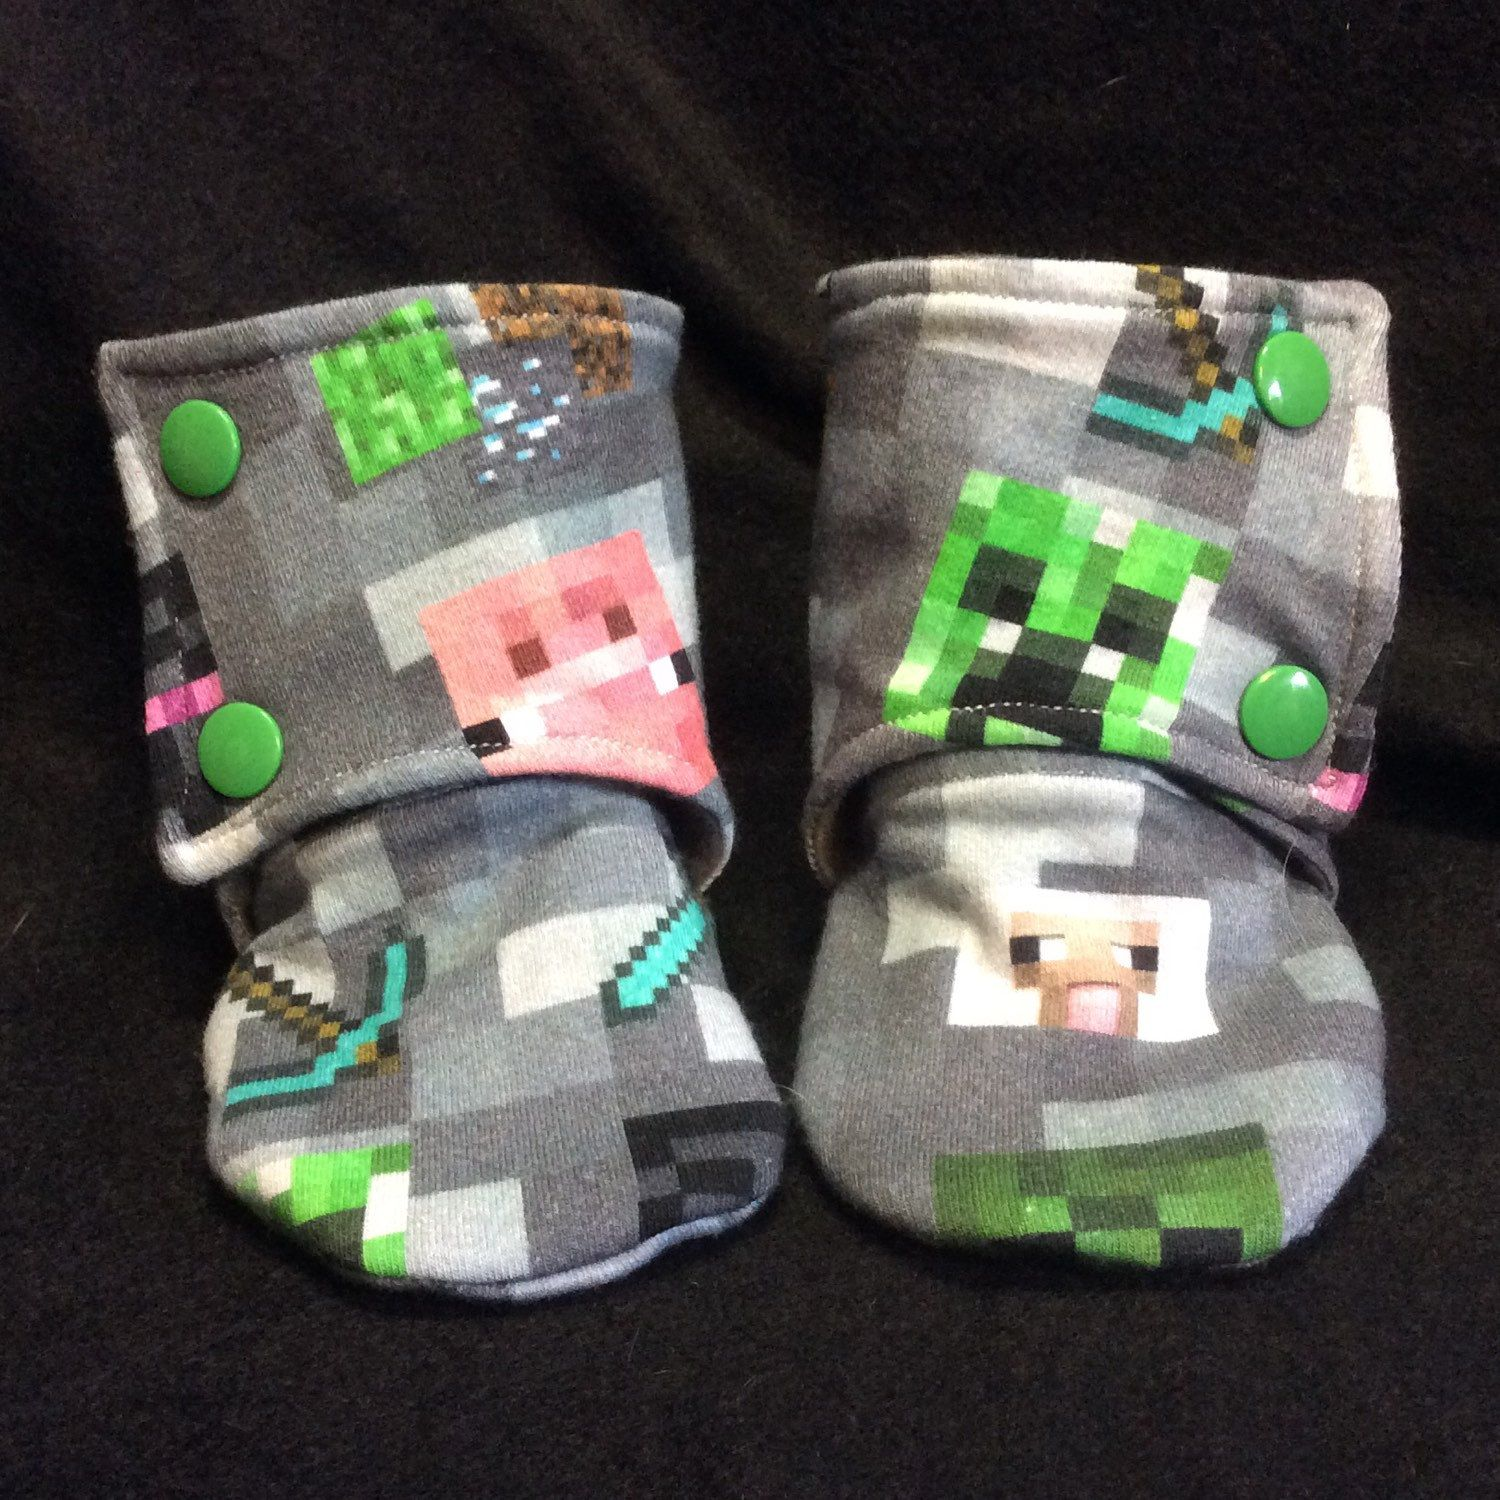 Minecraft booties, for the little gamer sidekick in your life! =)